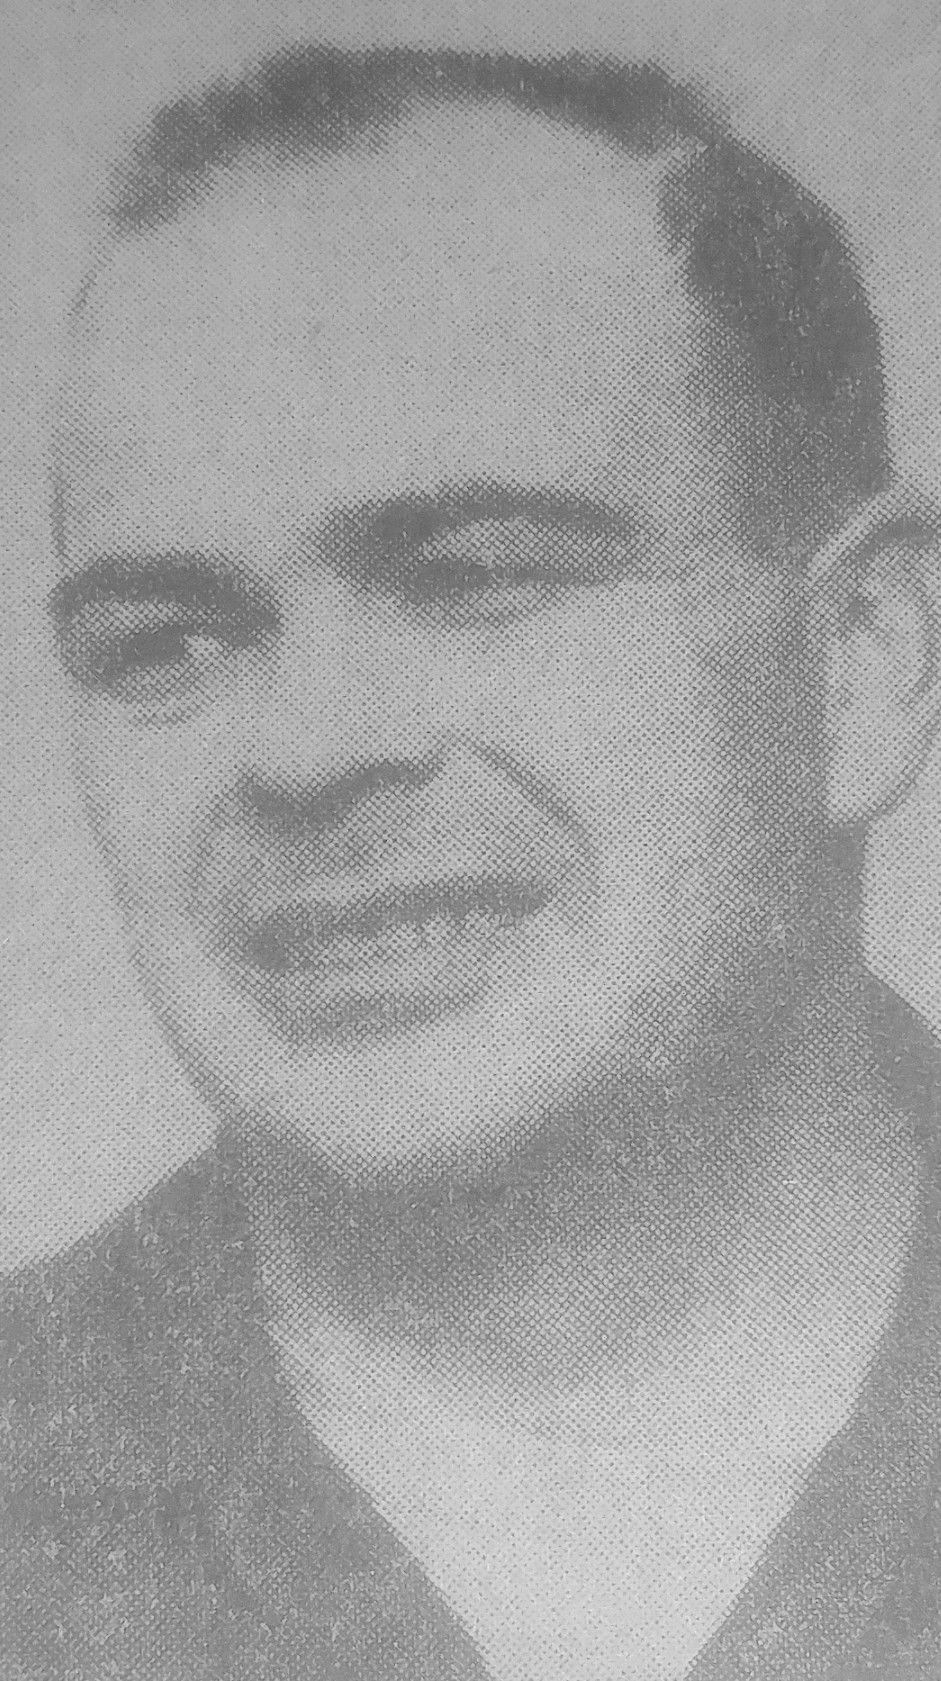 Lee R. Kennell